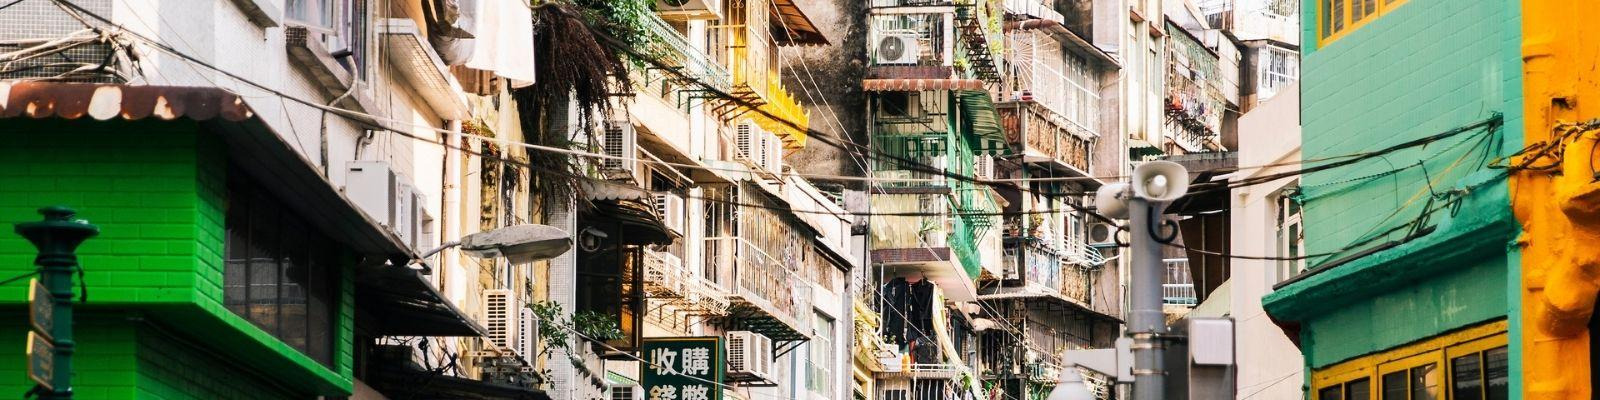 Visiting Macau for the First Time? Here's What to See and Do